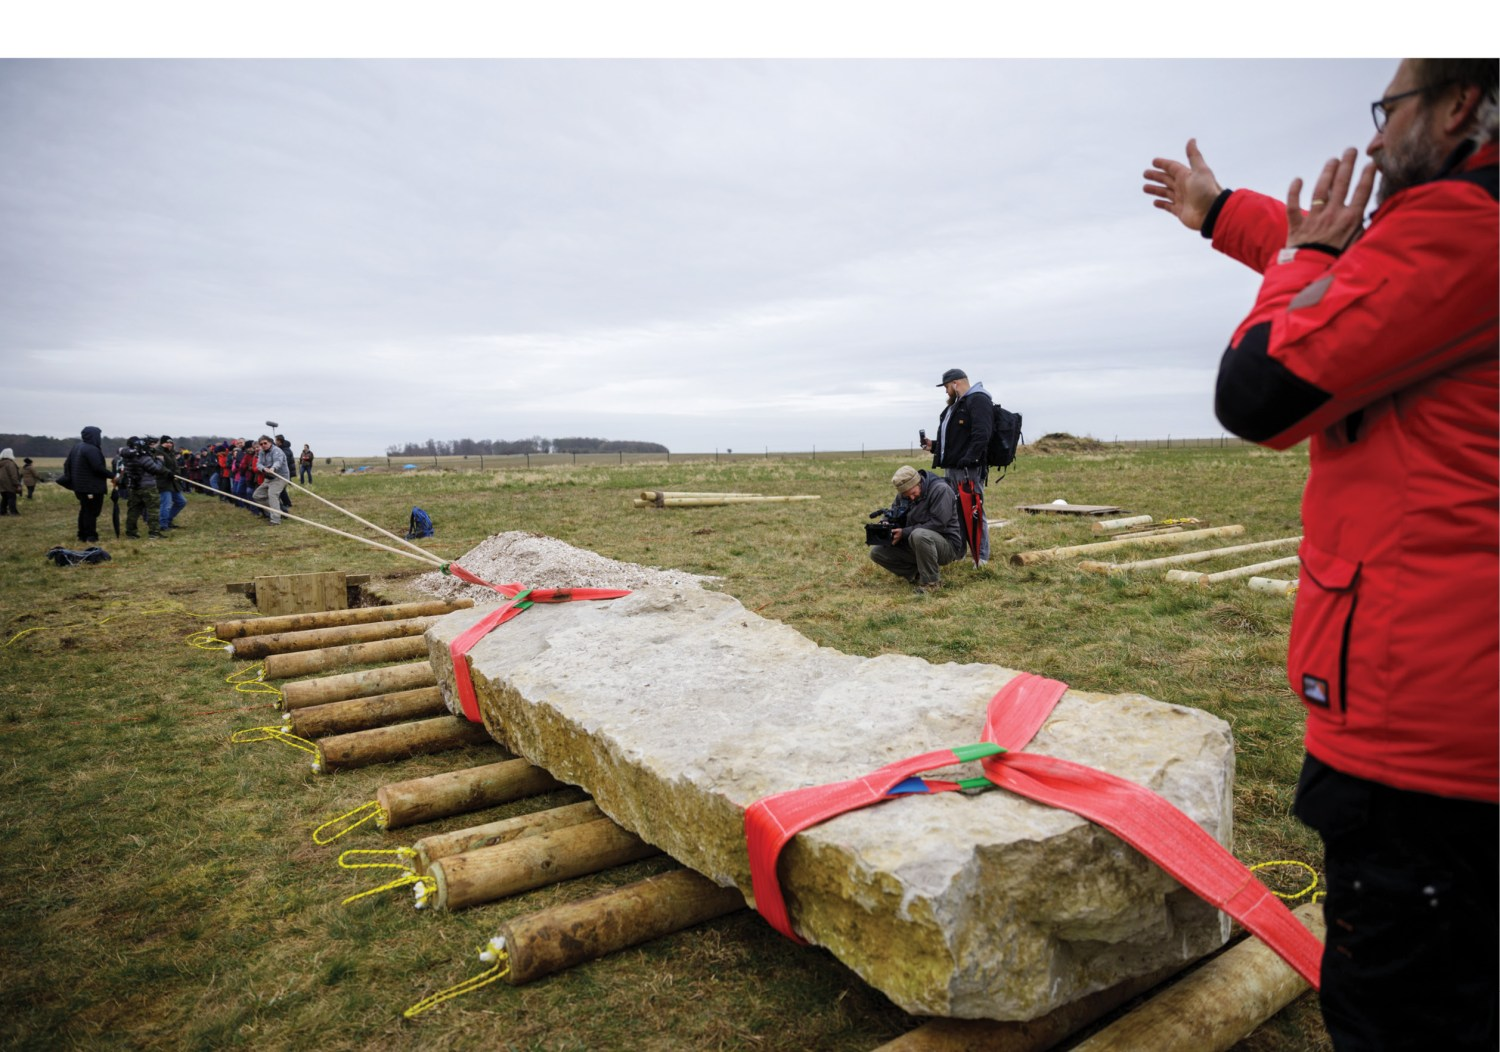 left In March, volunteers gathered at the Stonehenge Visitor Centre to take part in an archaeological experiment to explore how the celebrated monument's monoliths might have been moved.